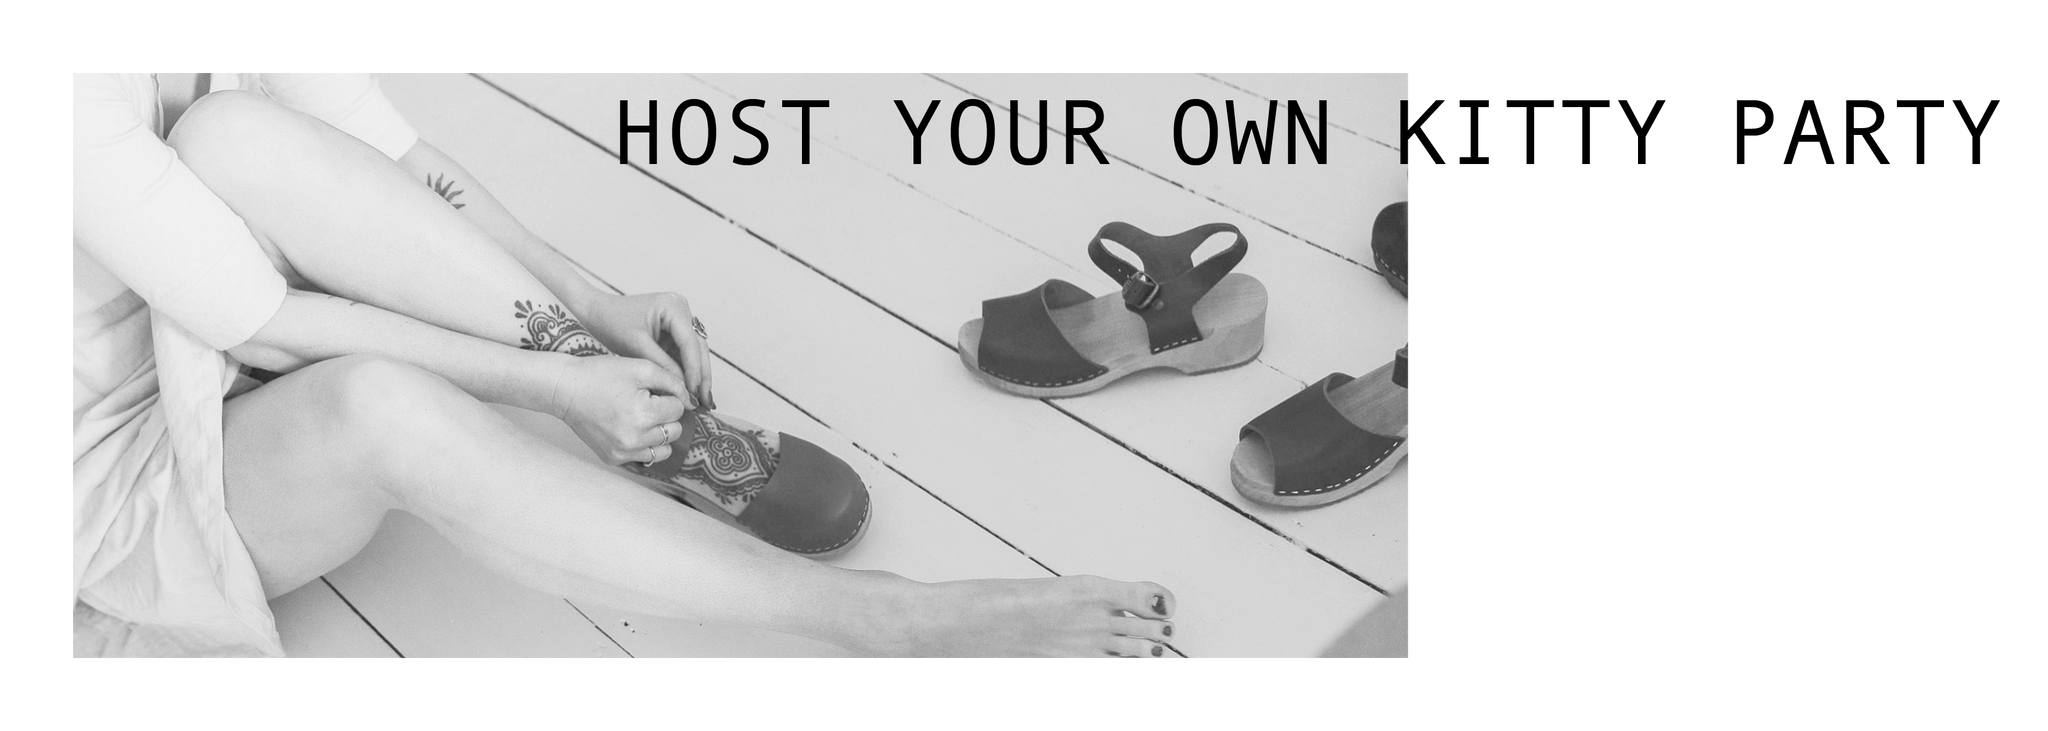 Host your own Kitty Clogs Party